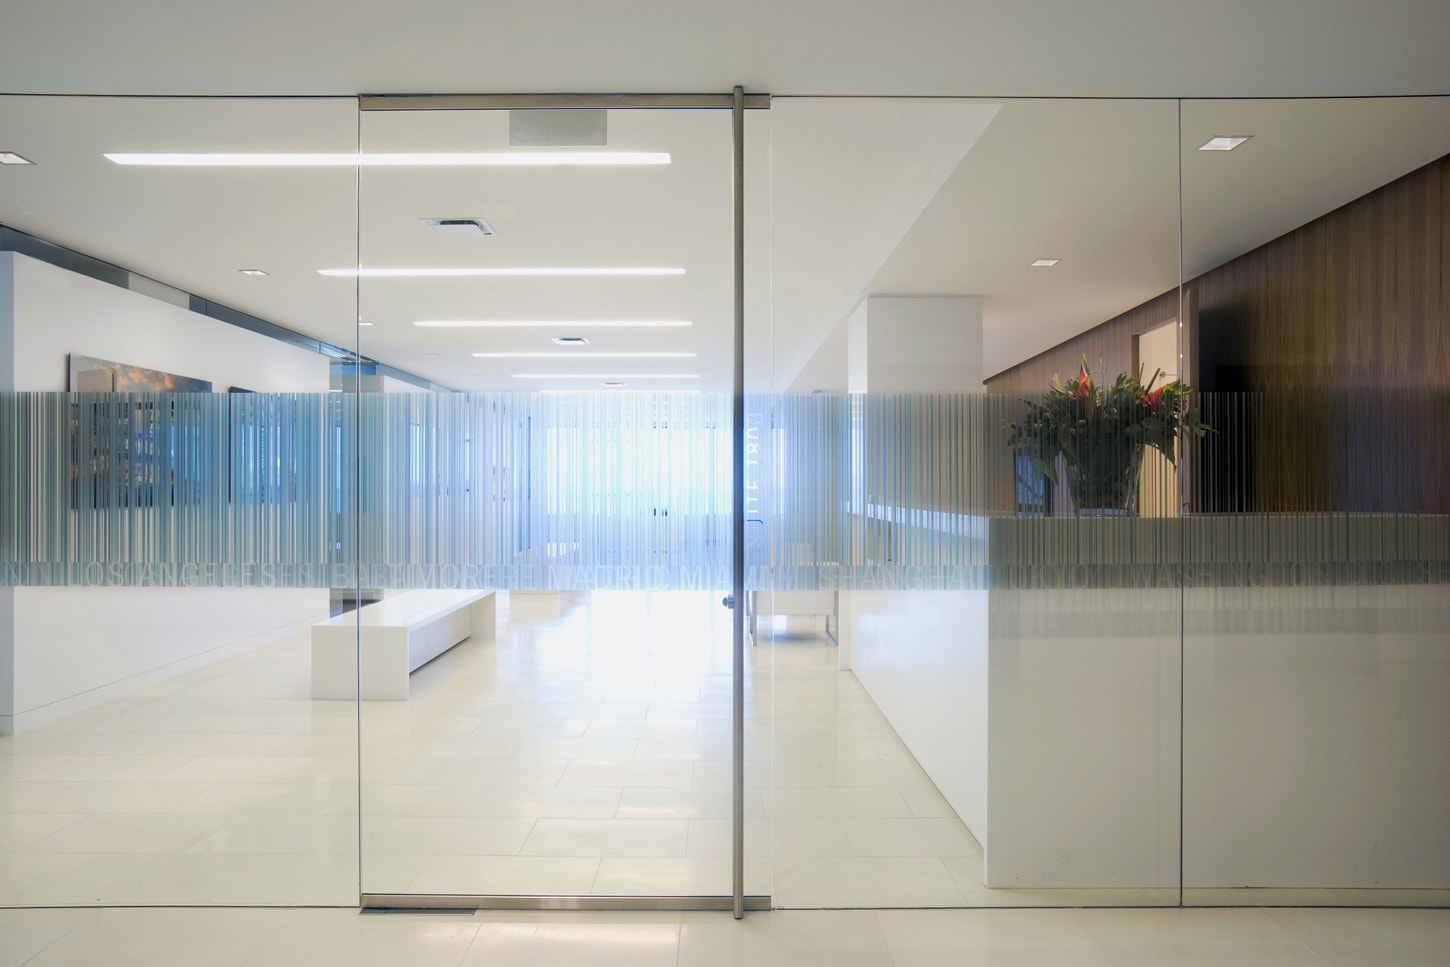 Glass Door Repair Dubai Get Glass Door Repair Dubai Services 0501235196